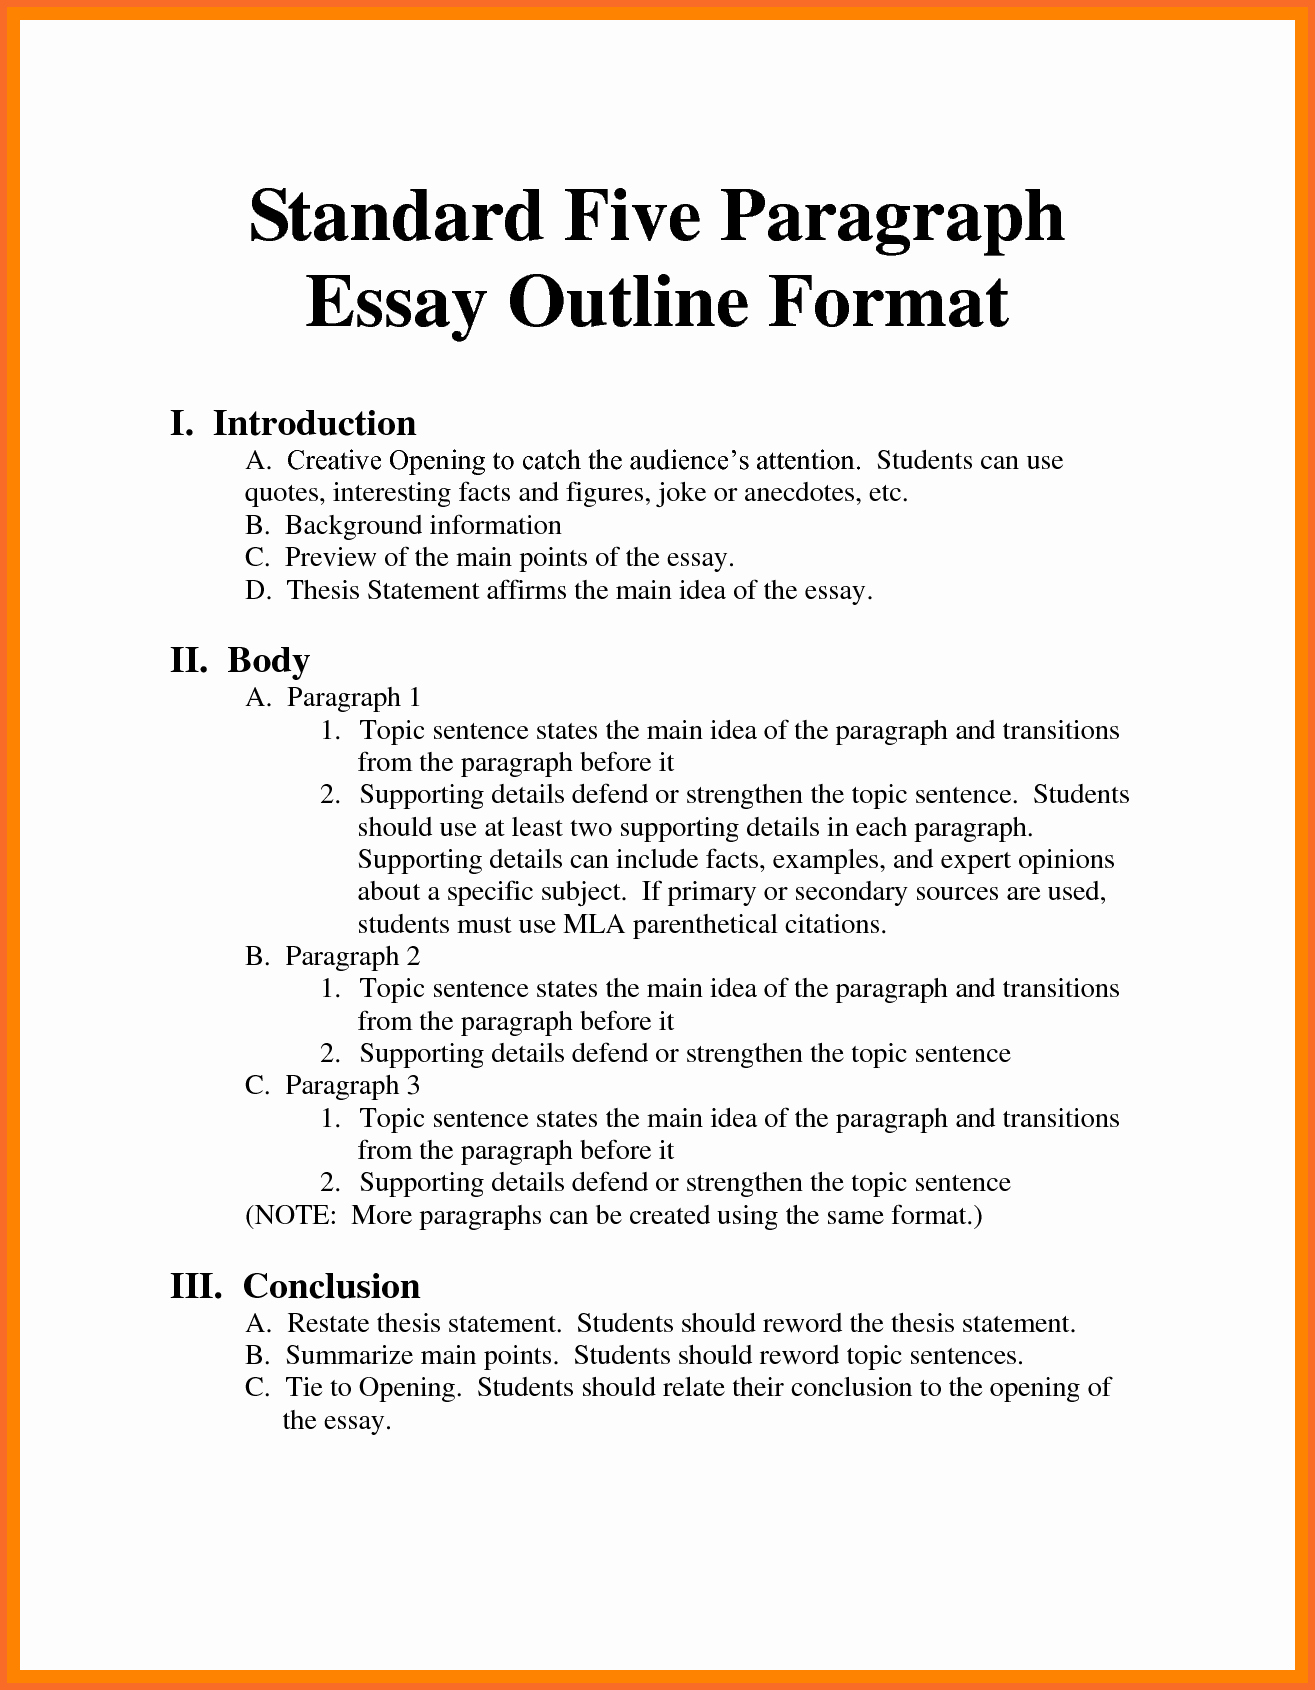 Mla Style Research Paper format Inspirational Sample Outline Mla format Research Paper Bamboodownunder